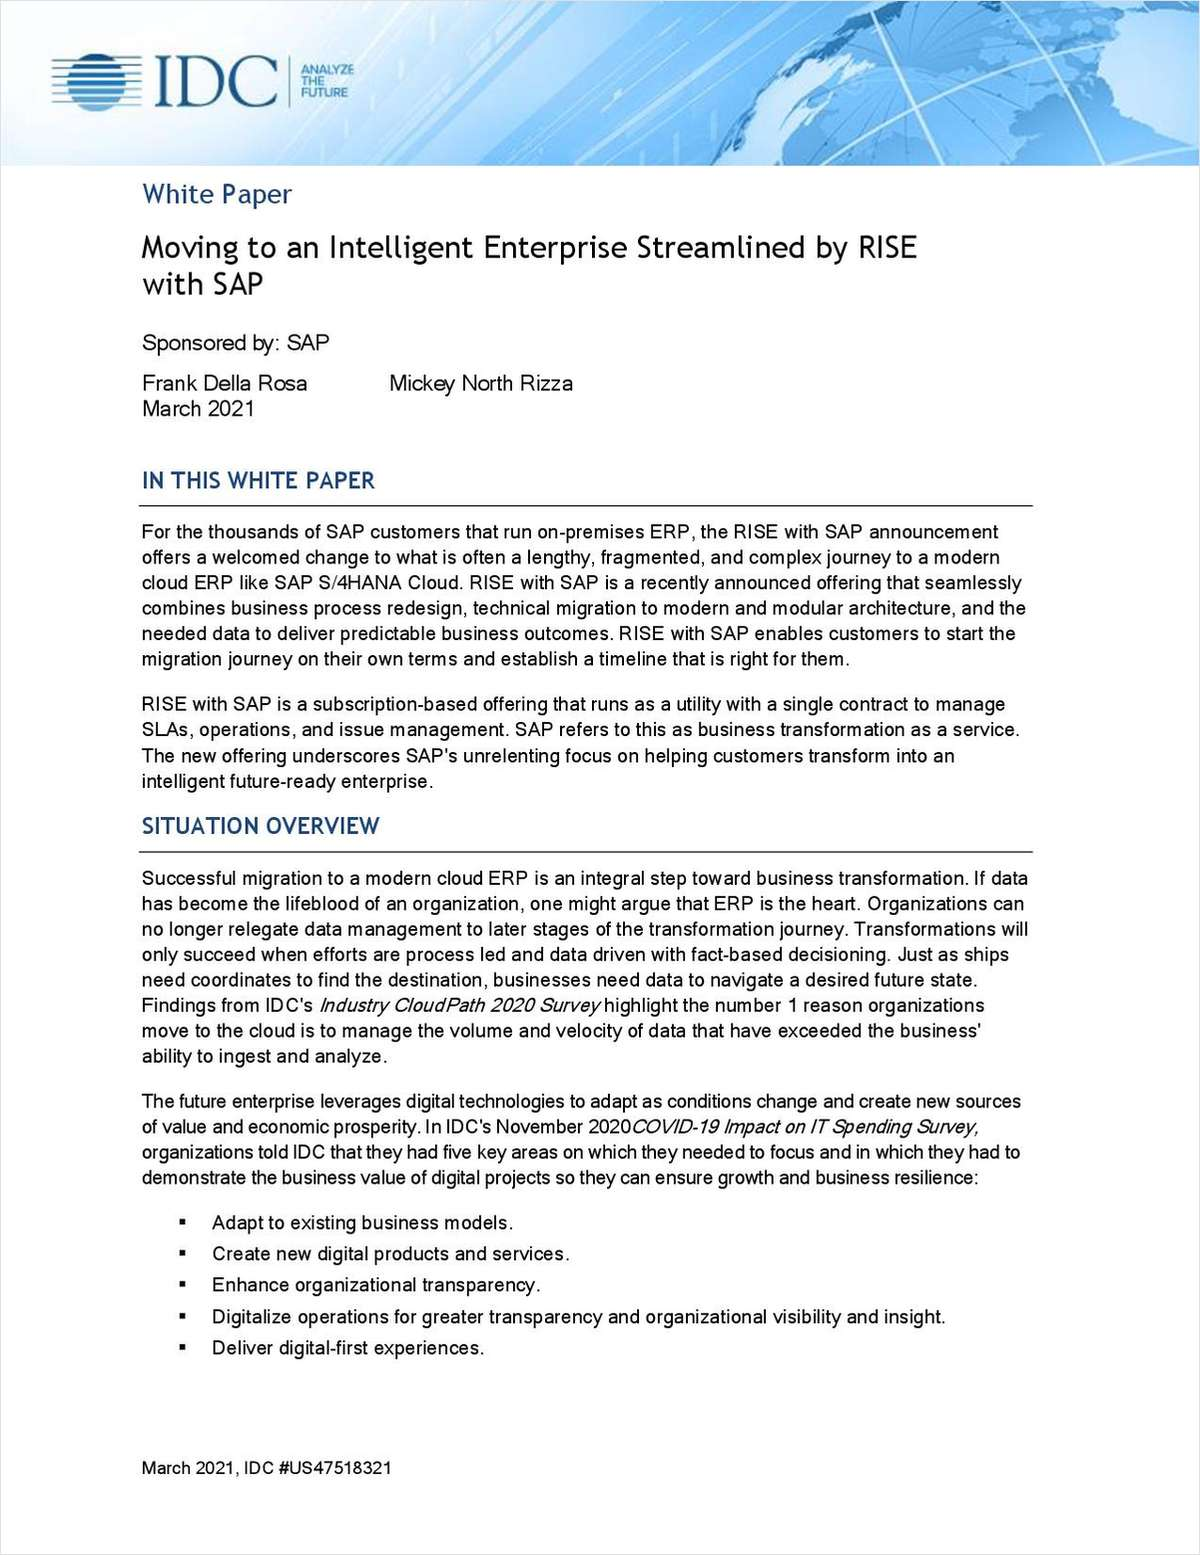 Moving to an Intelligent Enterprise Streamlined by RISE with SAP